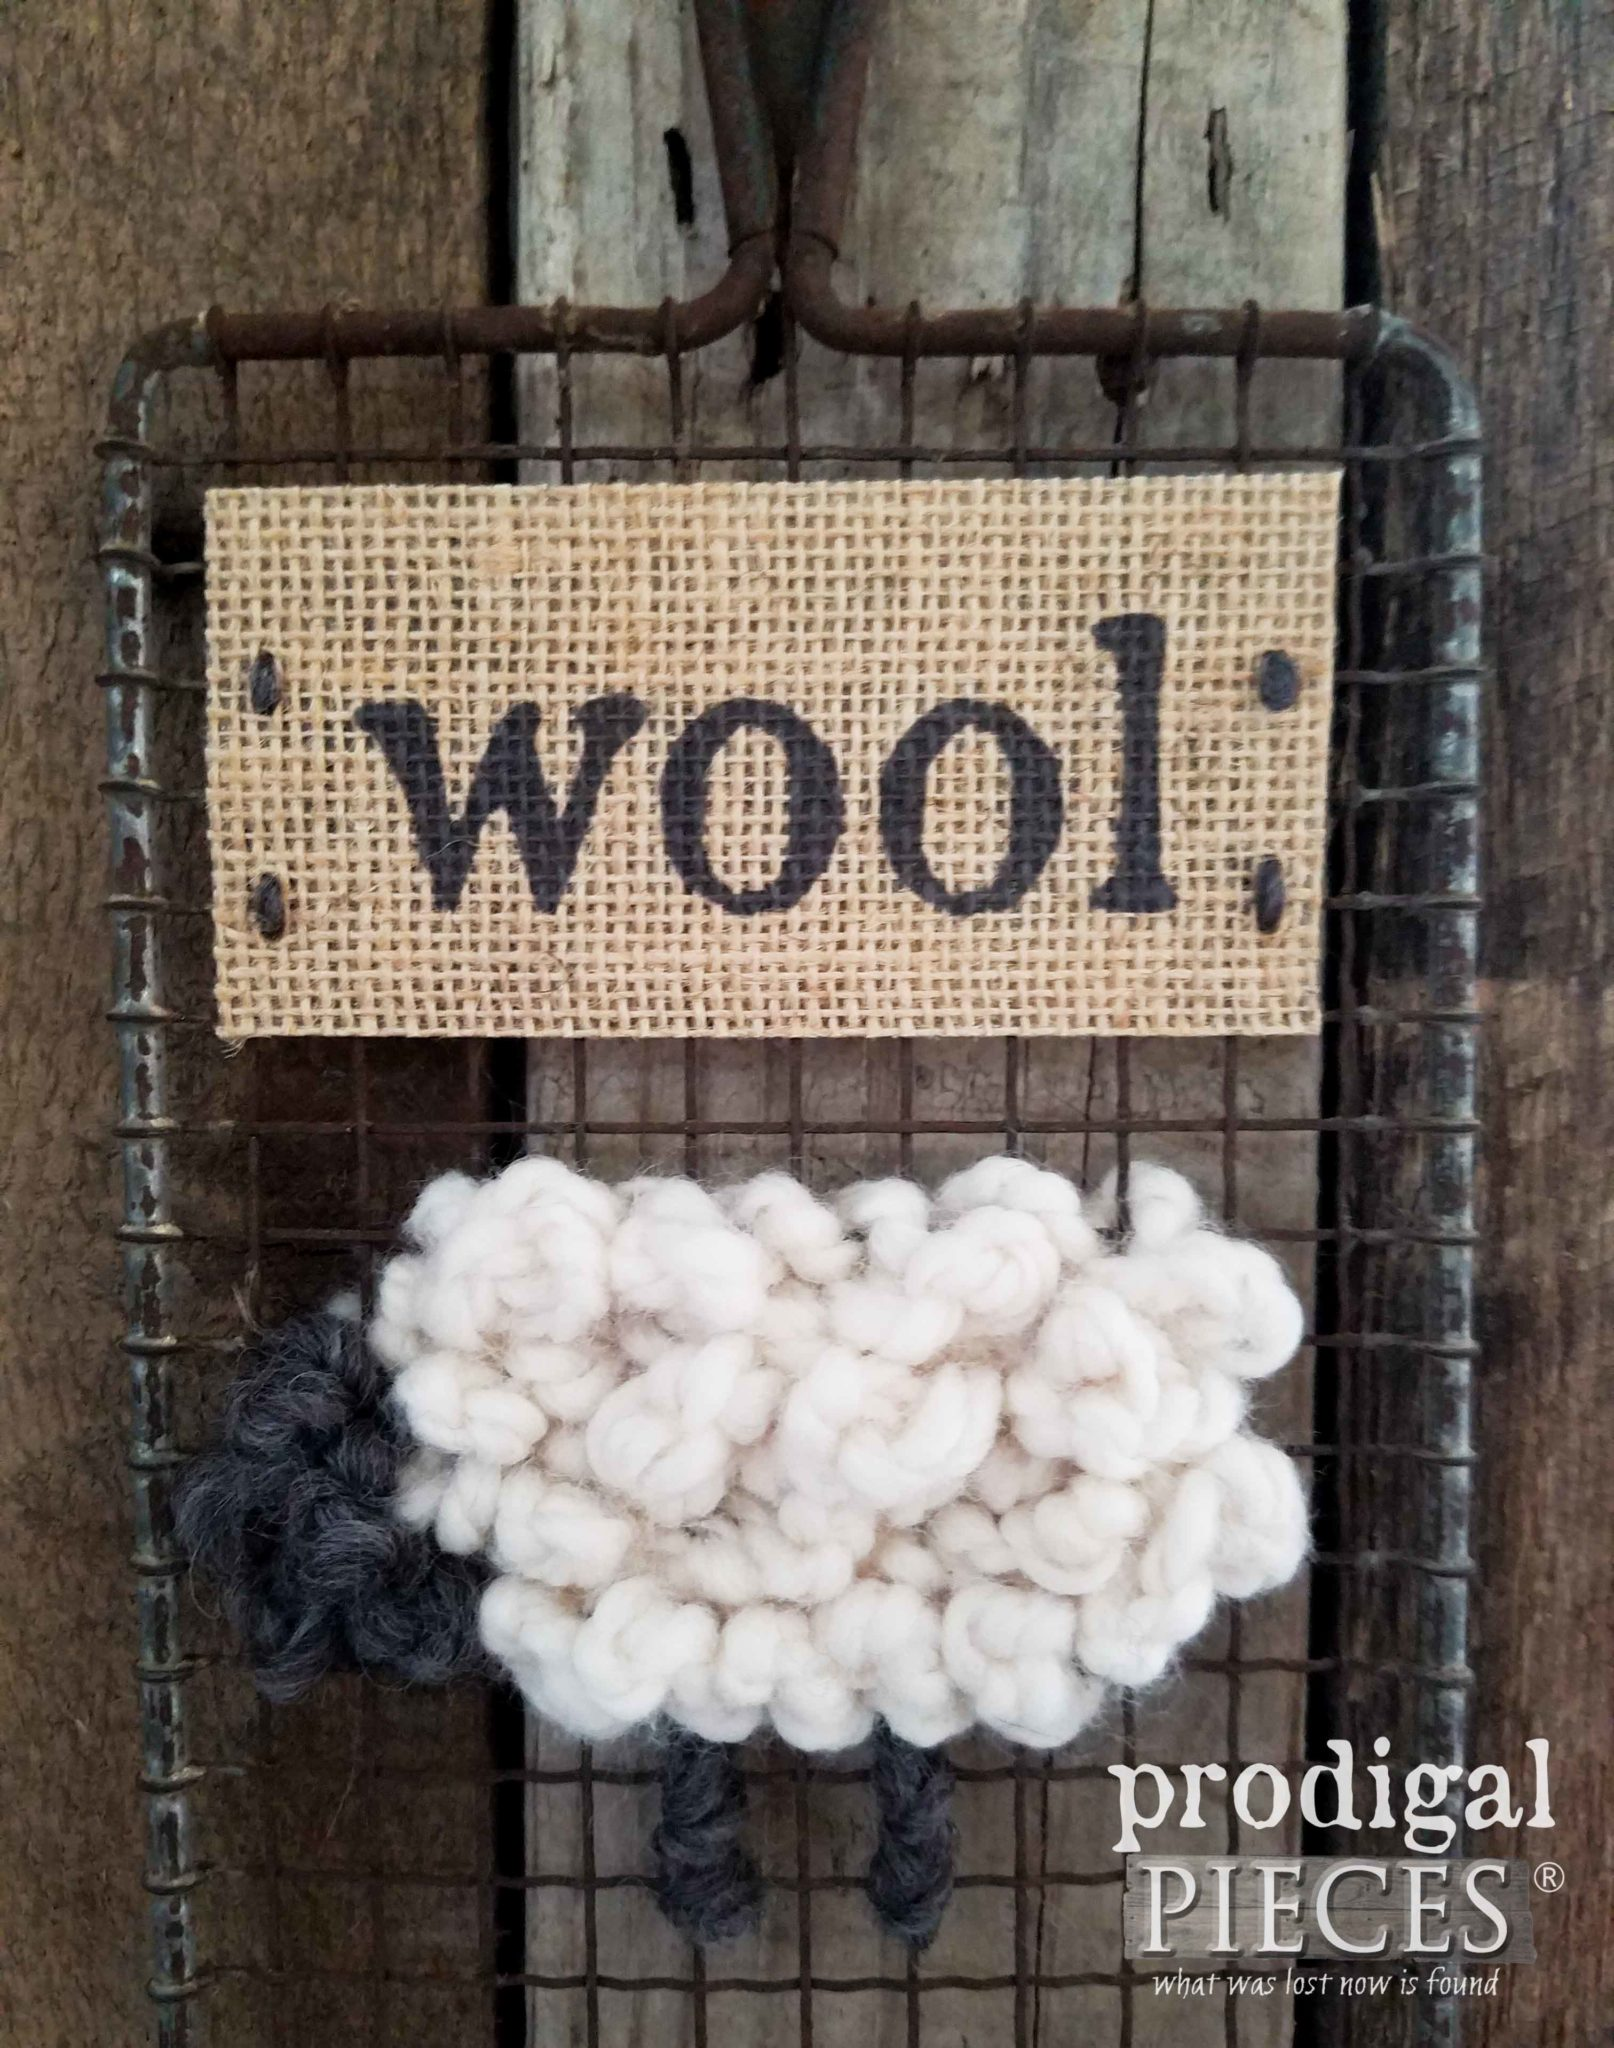 Hand-Stitched Woolly Sheep on Mesh Screen by Prodigal Pieces | prodigalpieces.com